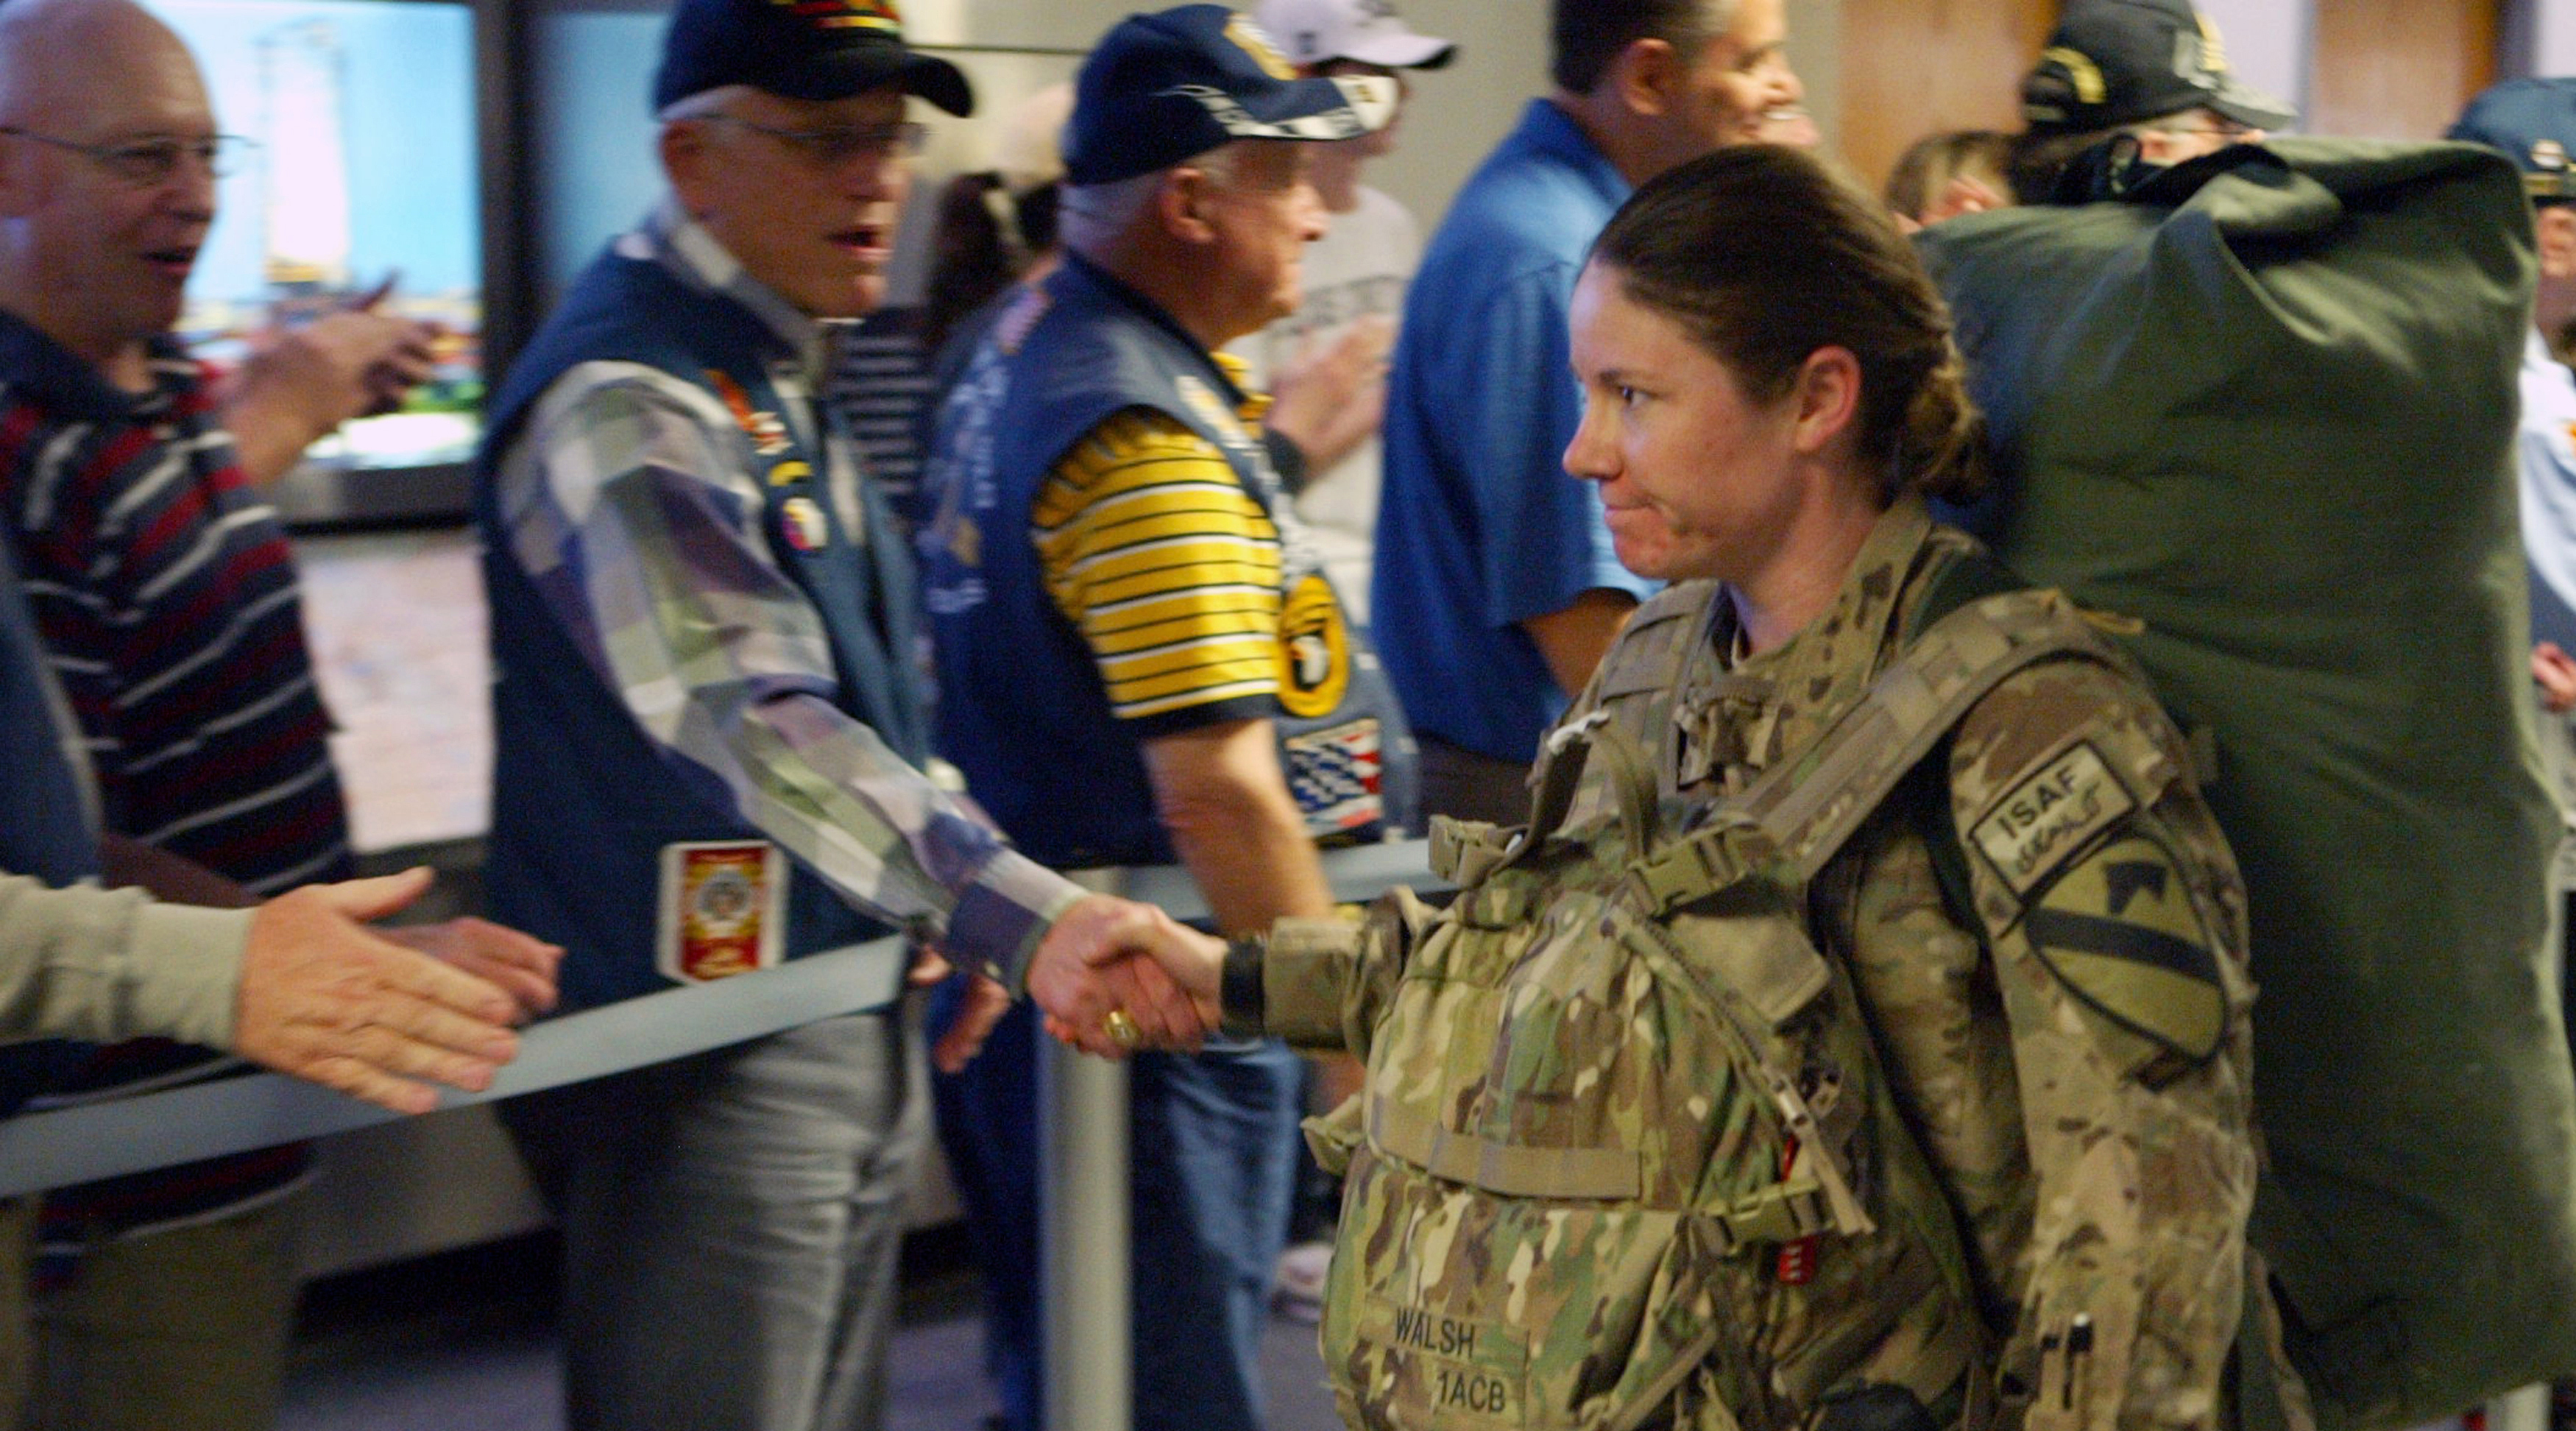 Female soldier shakes hands with older veteran onlookers at DFW International Airport